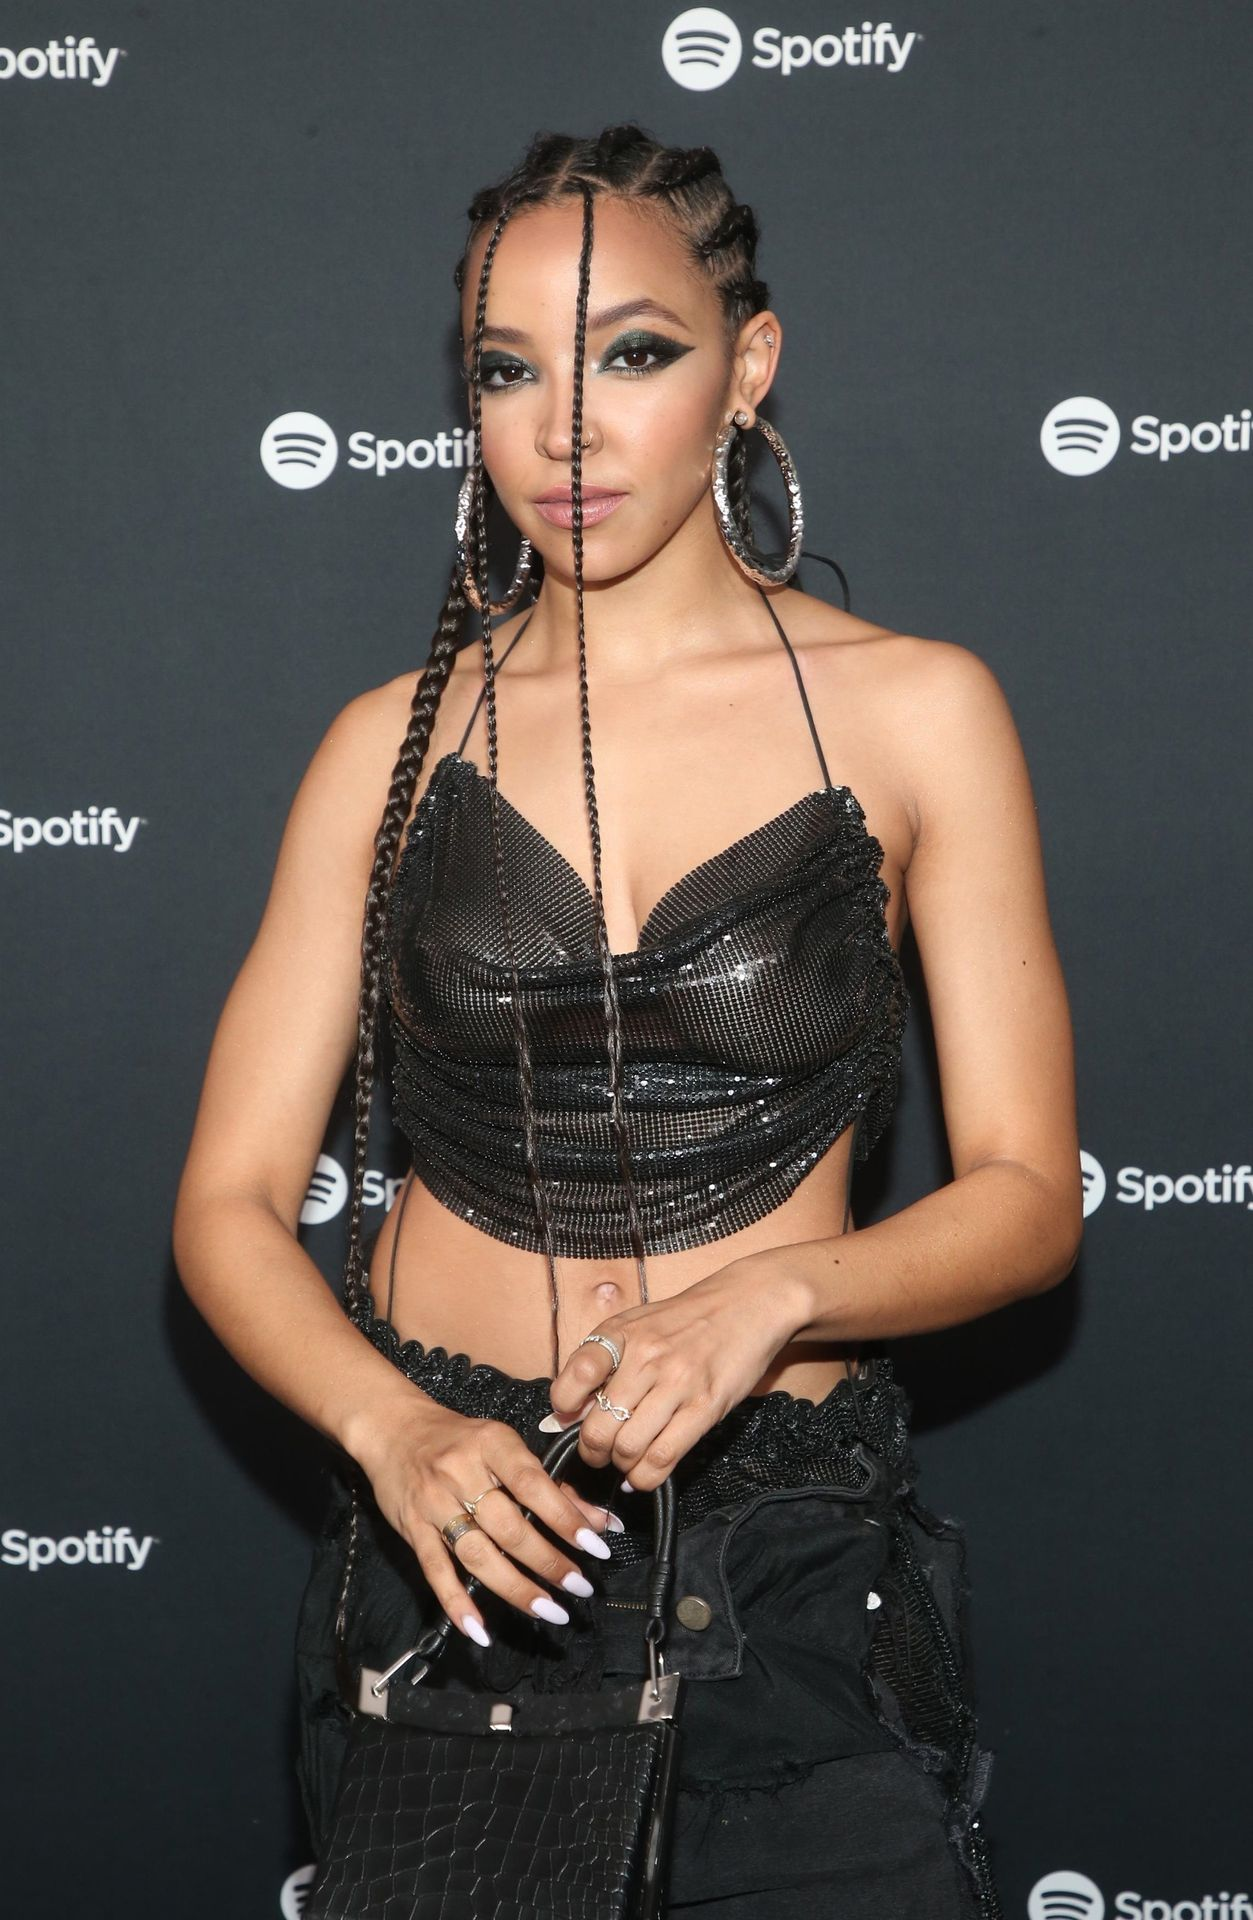 Tinashe Flaunts Her Tits At The Spotify Best New Artist Party 0019